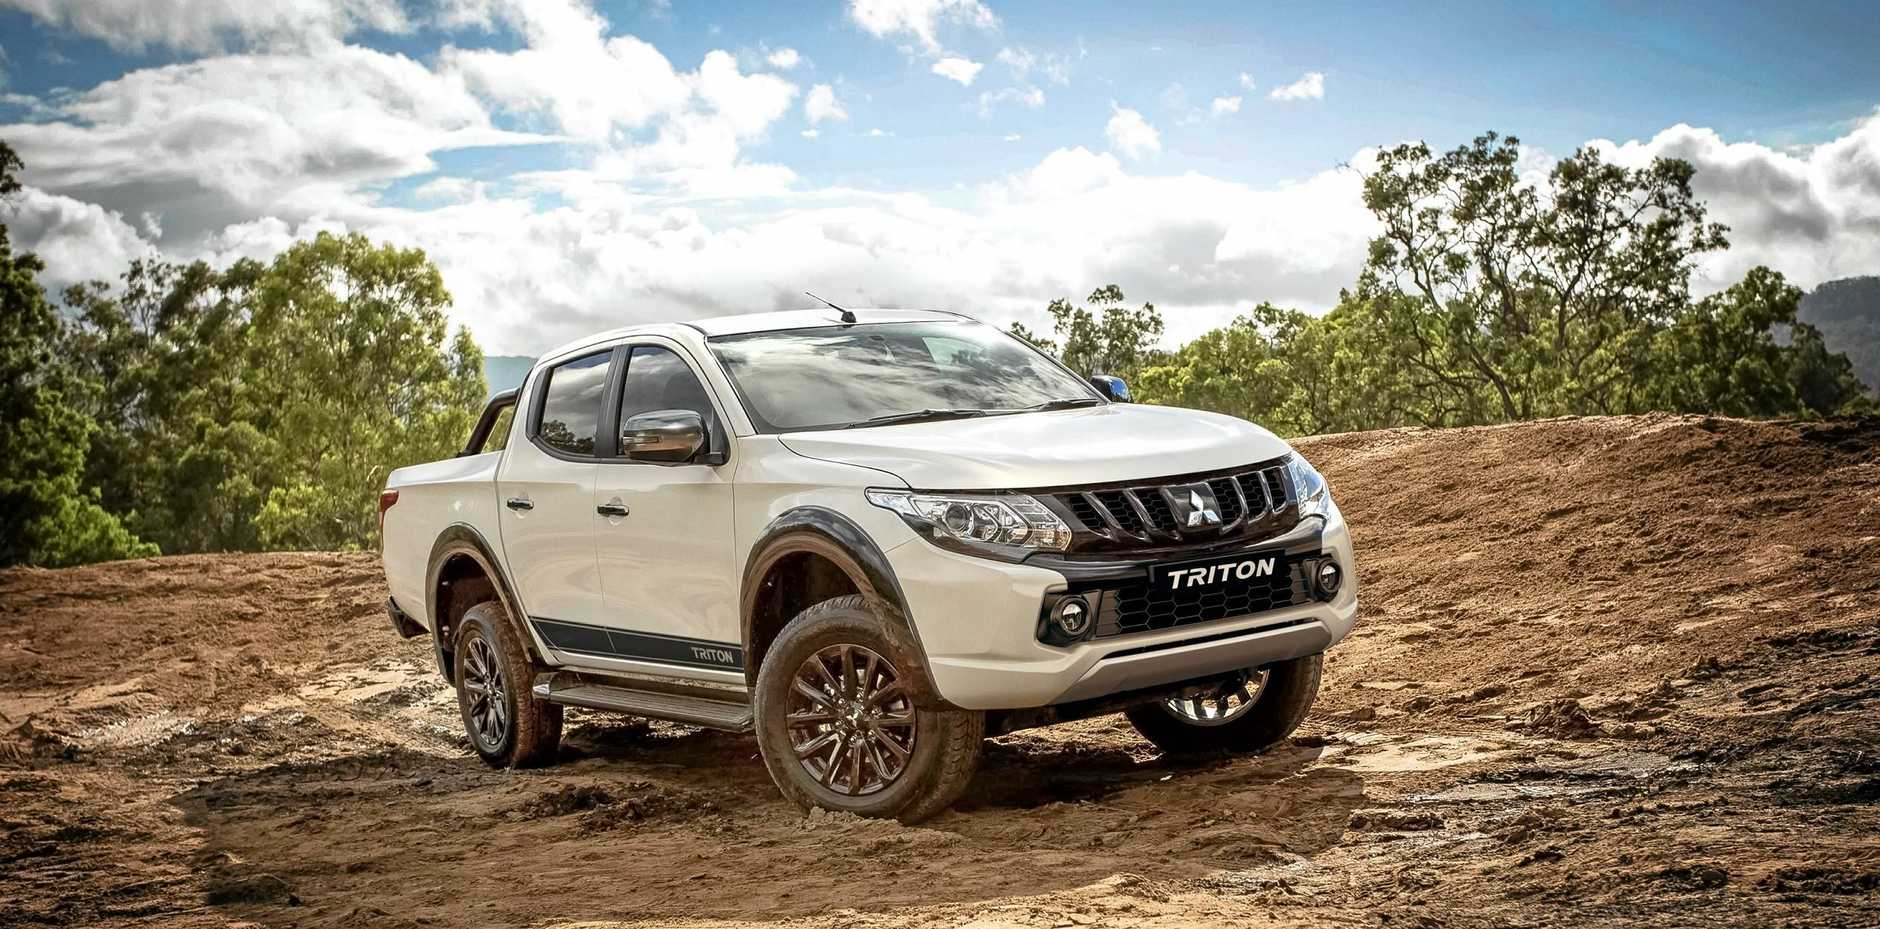 This limited edition Triton Blackline model based on its popular 2018 GLS 4x4 Double Cab.